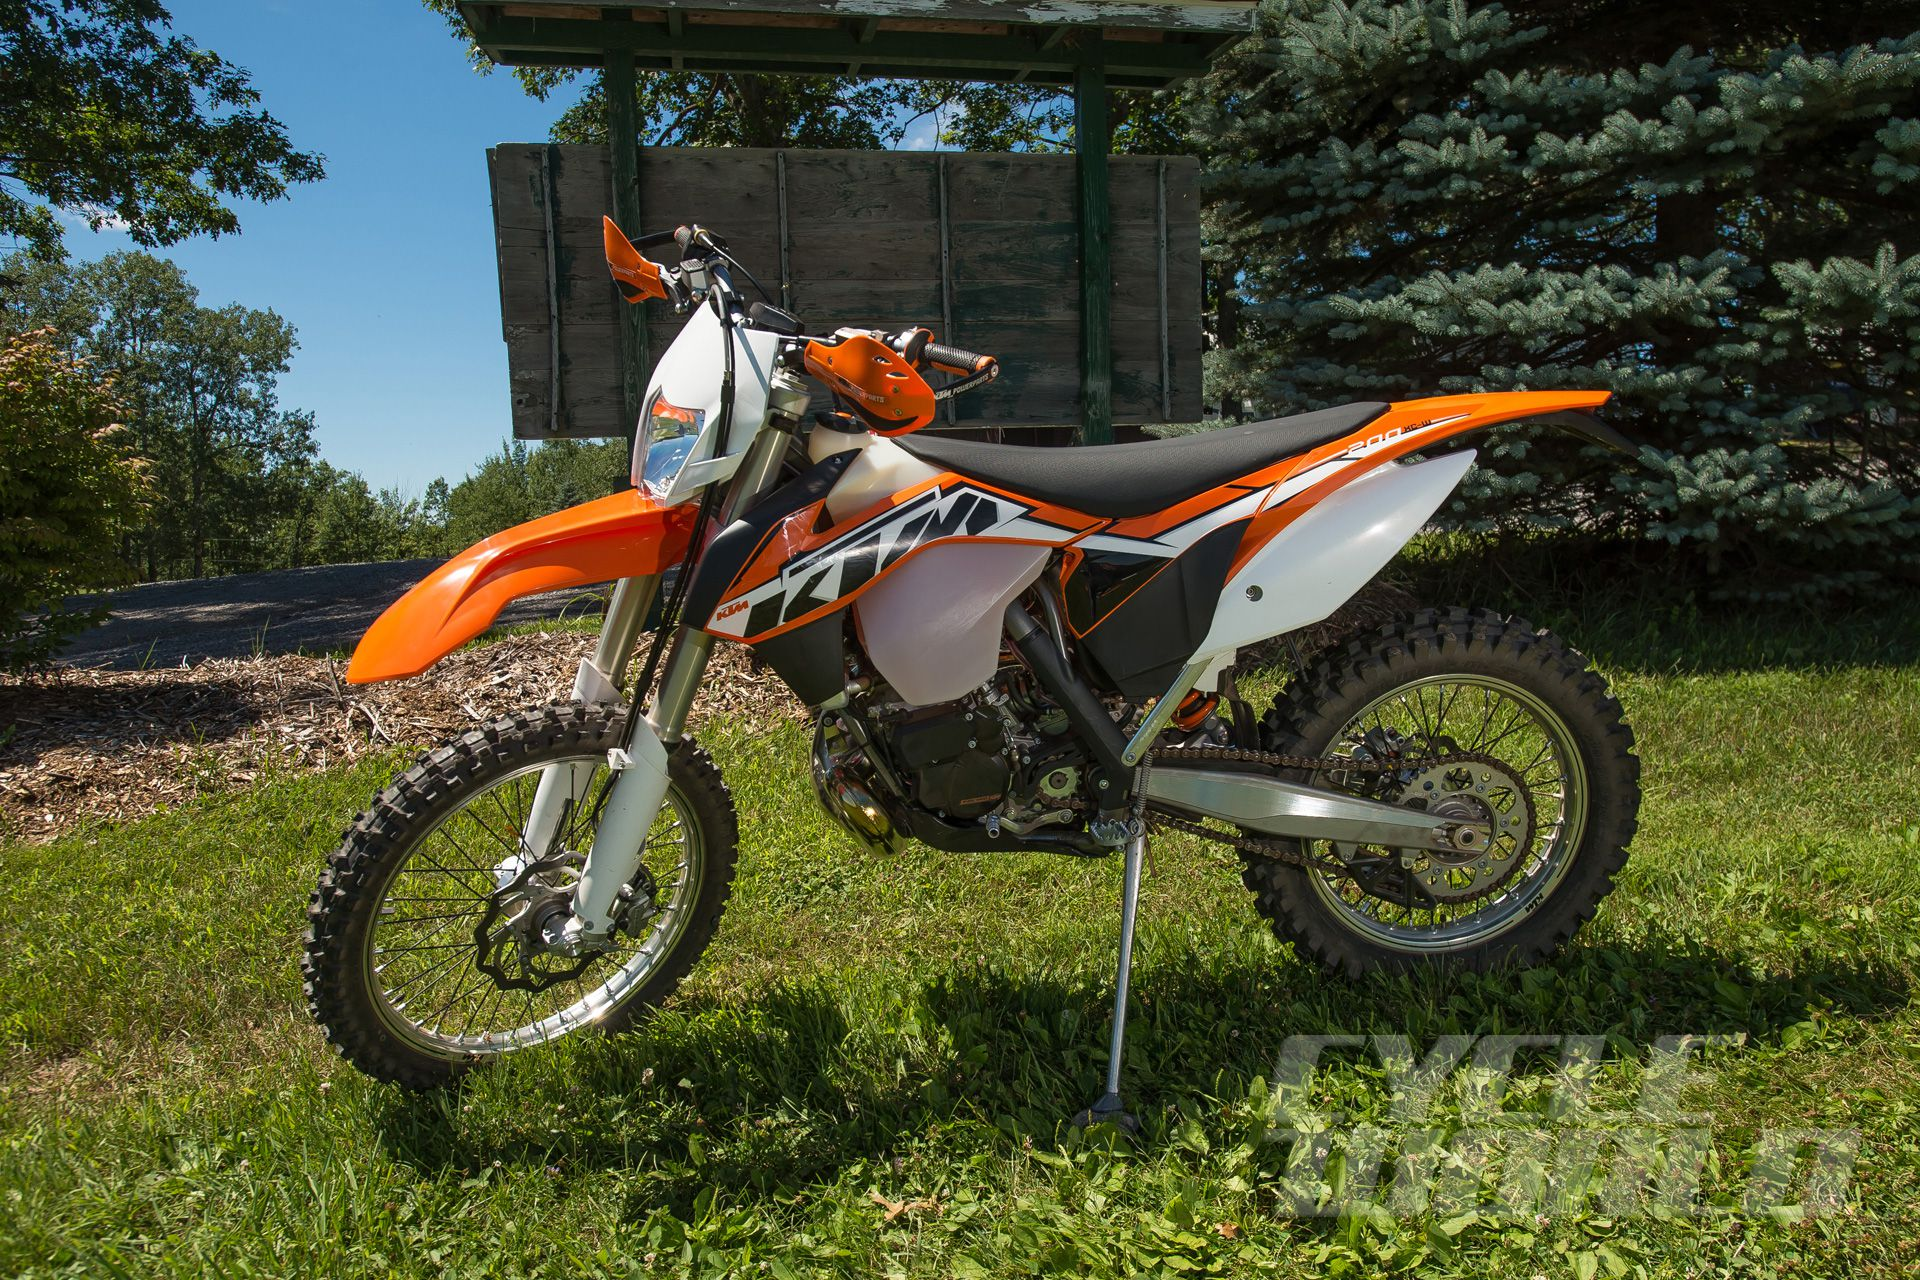 Surprising 2014 Ktm 200 Xc W First Ride Review Photos Pricing Cycle Pabps2019 Chair Design Images Pabps2019Com